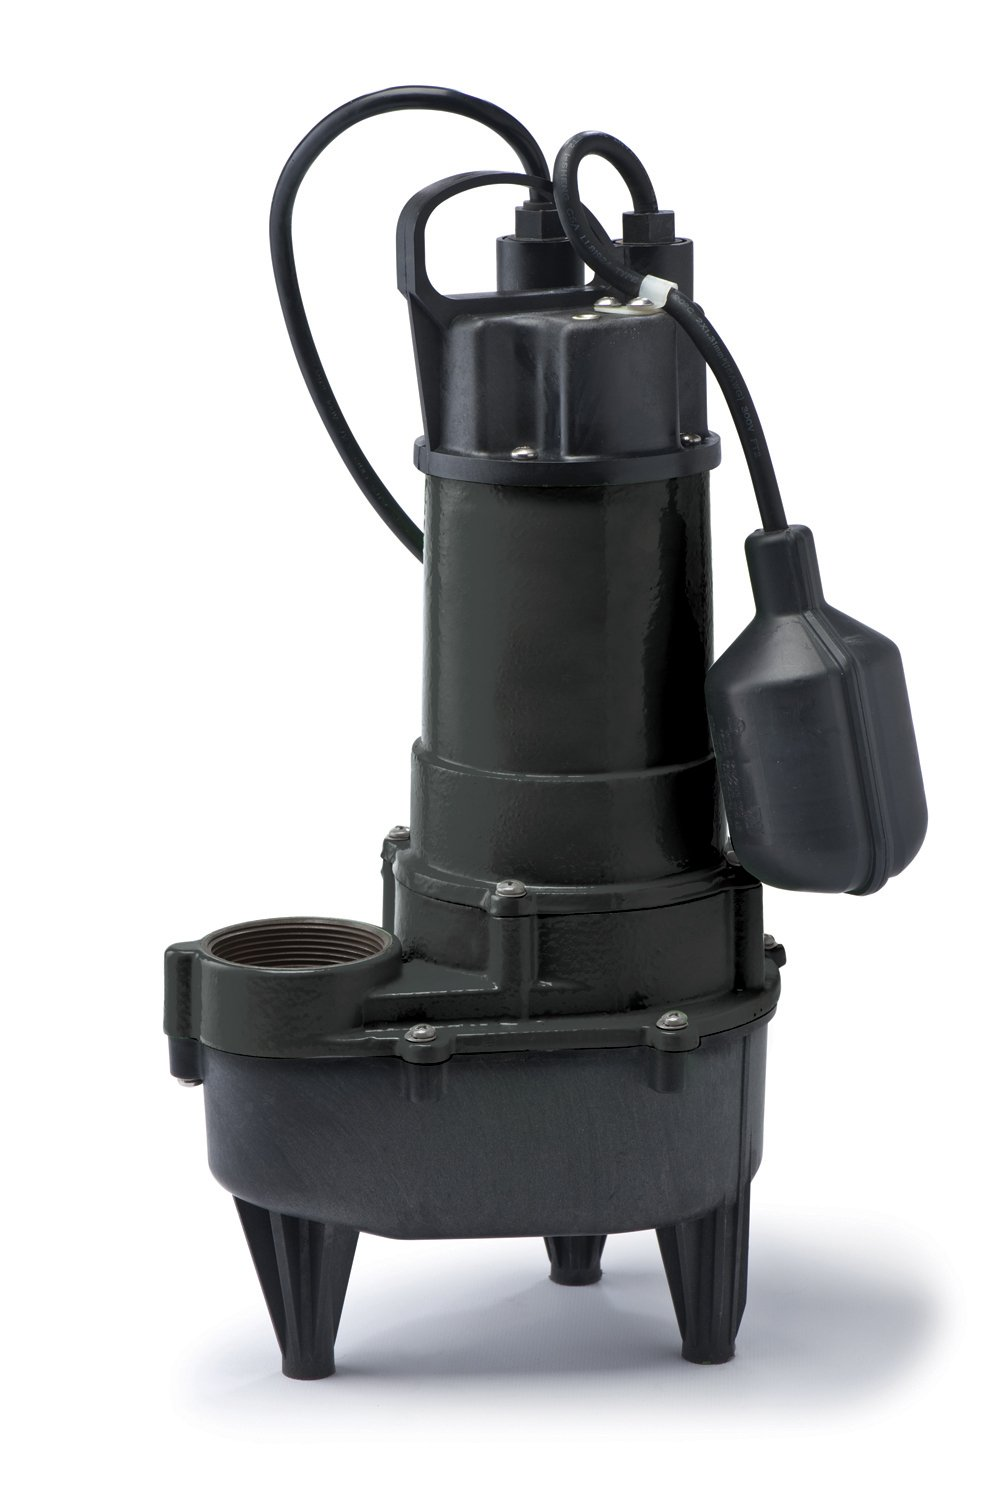 ECO-FLO Products RSE50W Cast Iron Sewage Pump with Wide Angle Switch, 1/2 HP, 5,700 GPH by ECO-FLO PRODUCTS INCORPORATED